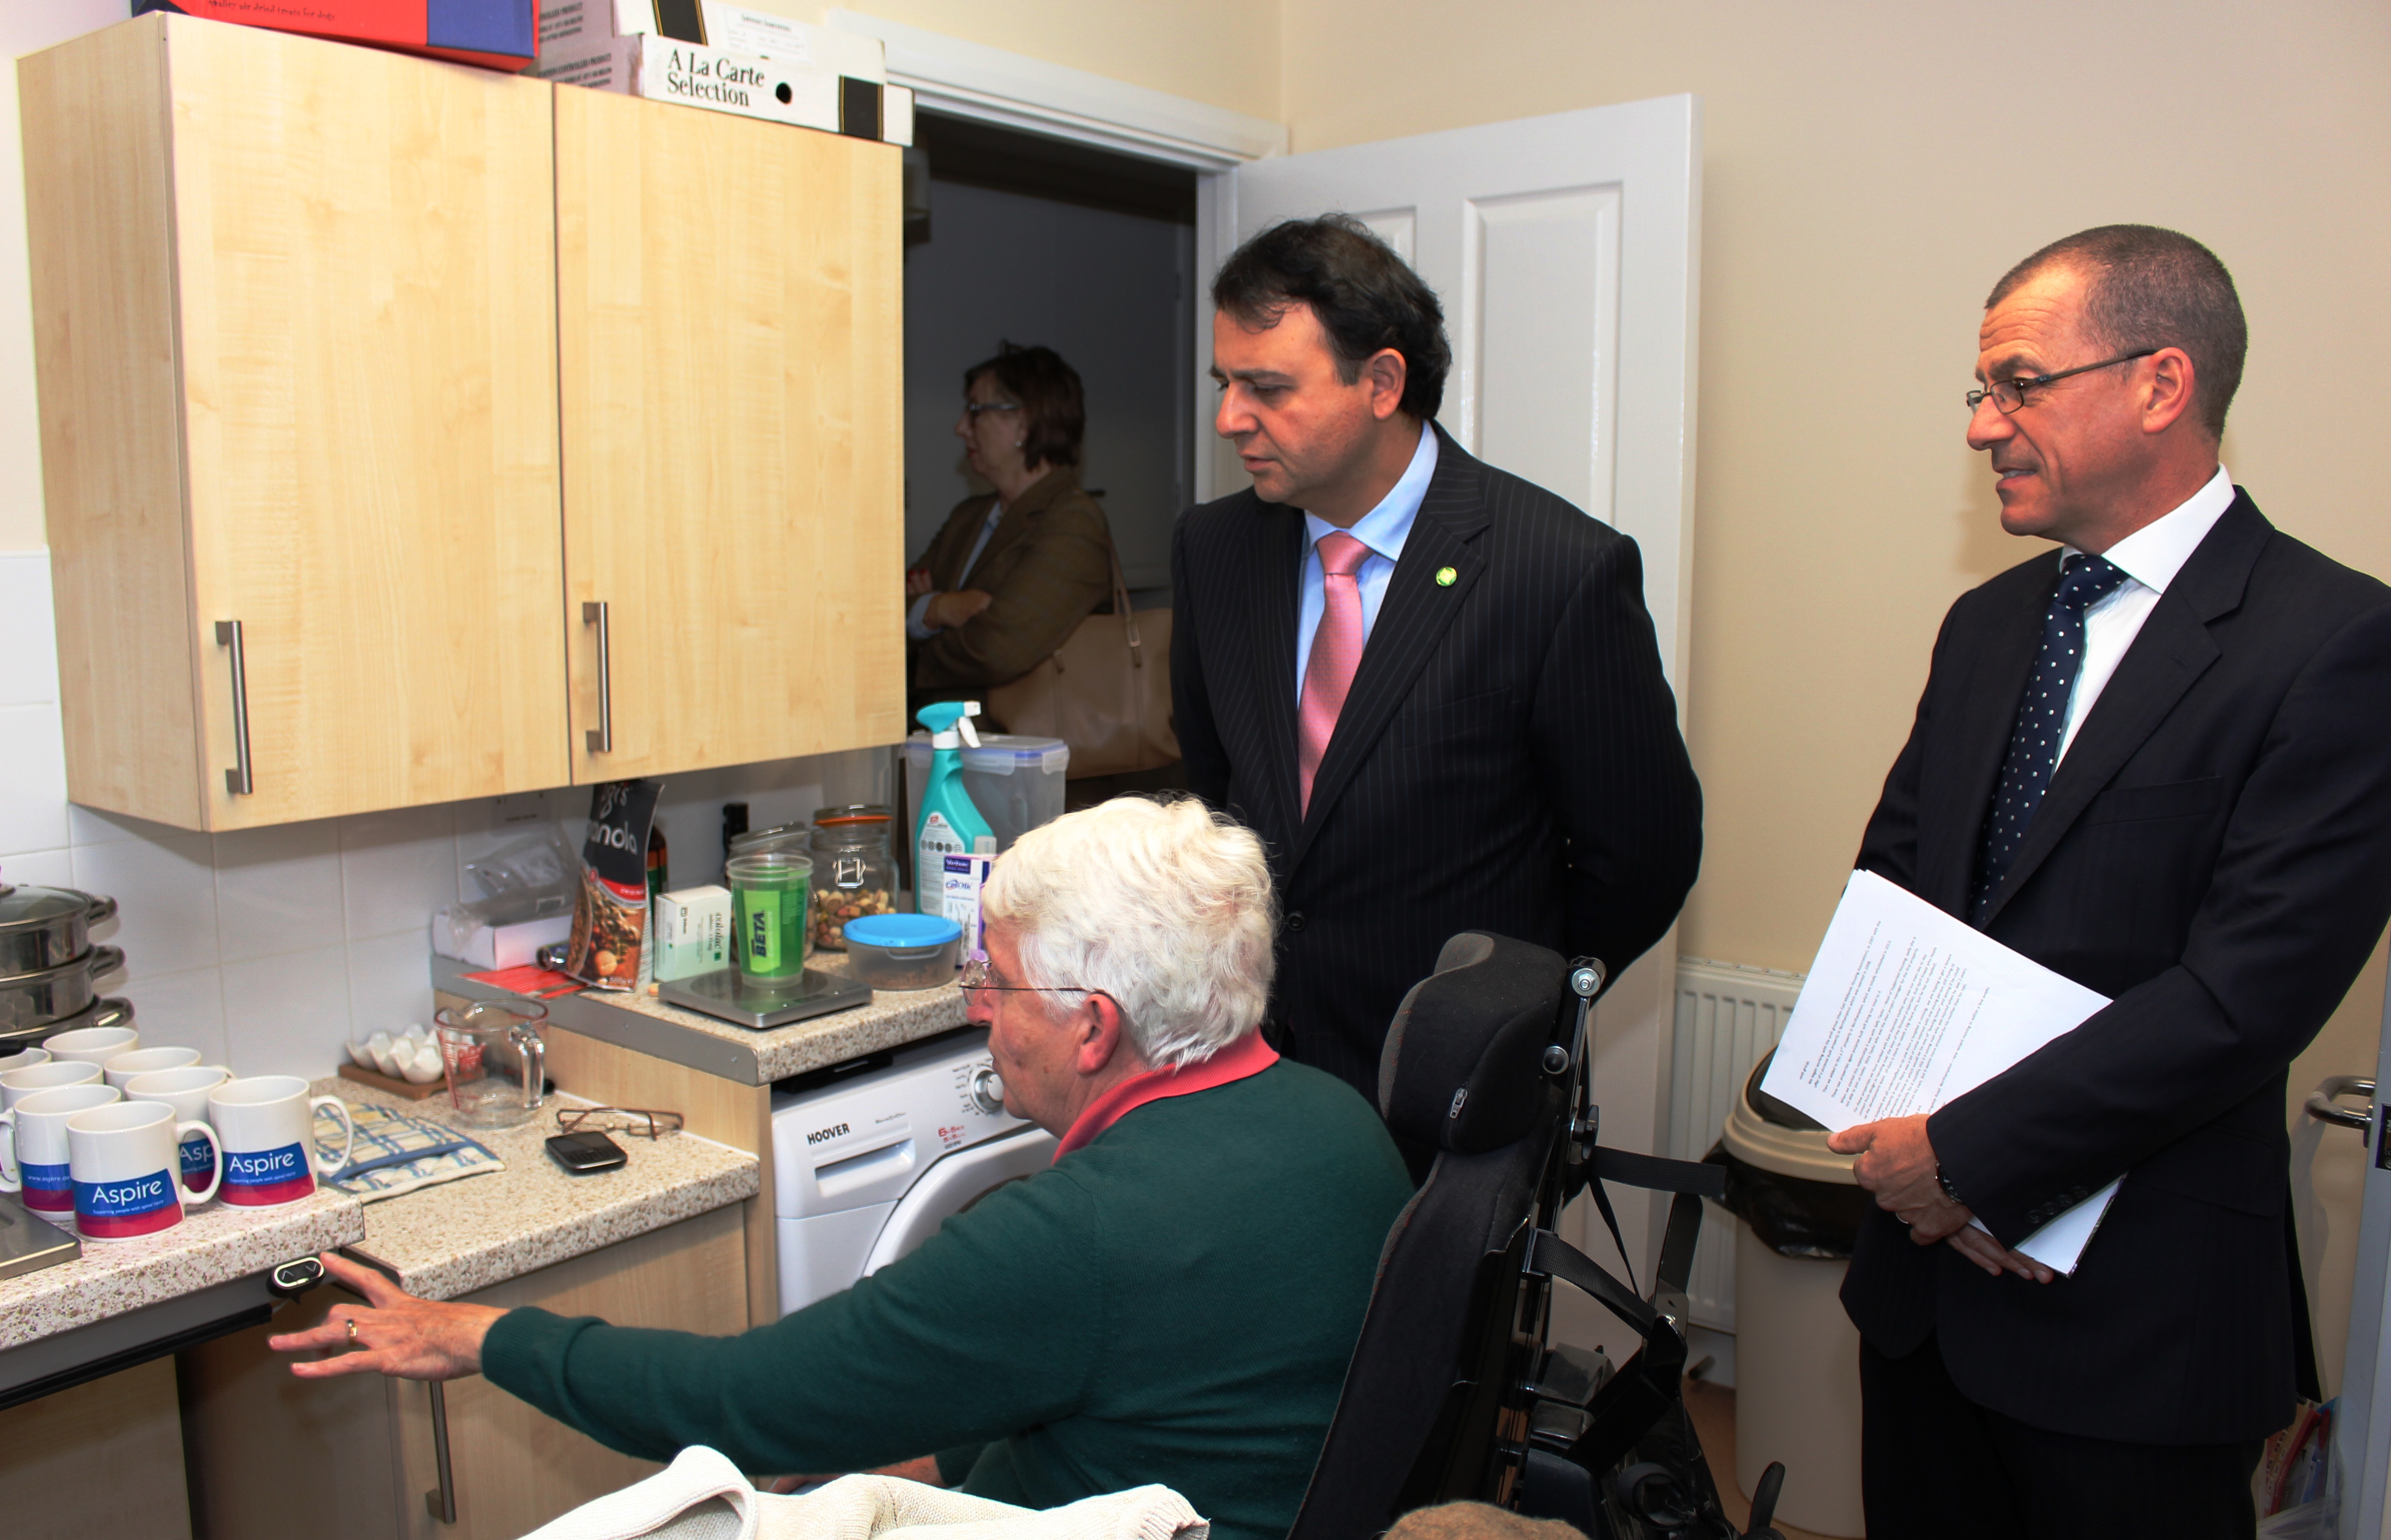 Resident showing Alberto Costa MP the accessible kitchen, with Brian Carlin